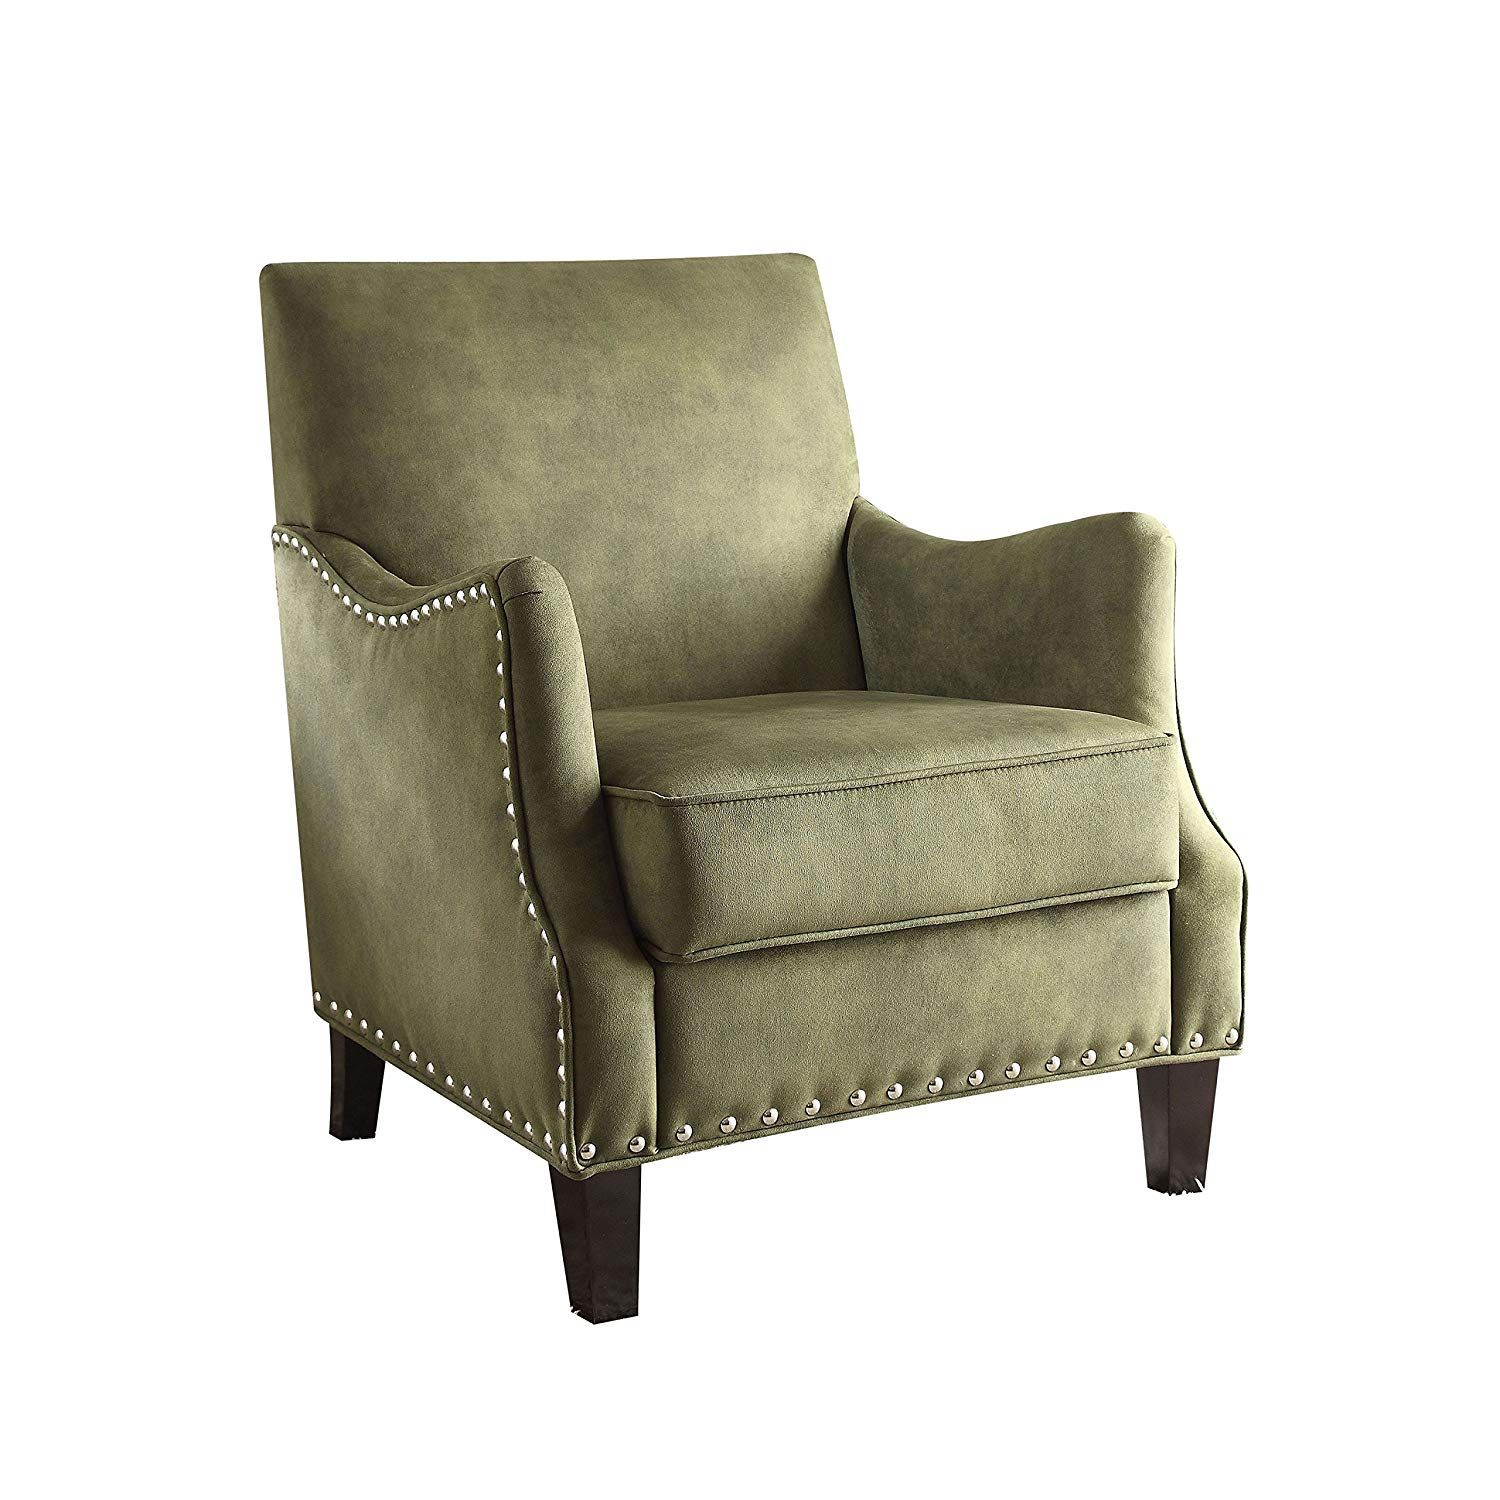 Surprising Amazon Com Acme Furniture 59446 Sinai Accent Chair Olive Gmtry Best Dining Table And Chair Ideas Images Gmtryco